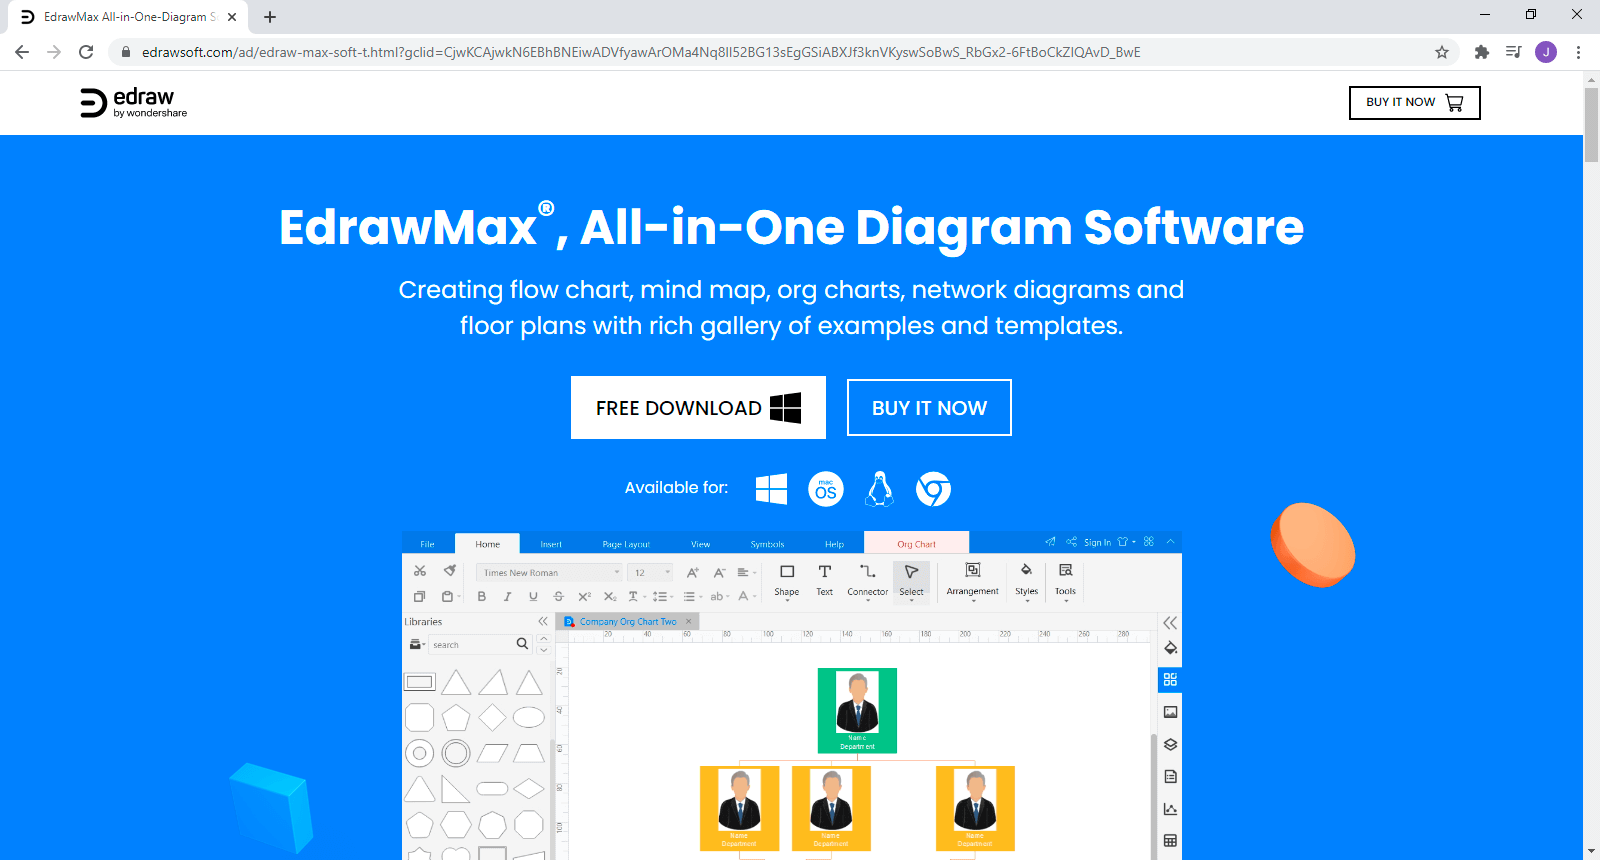 Download and install EdrawMax